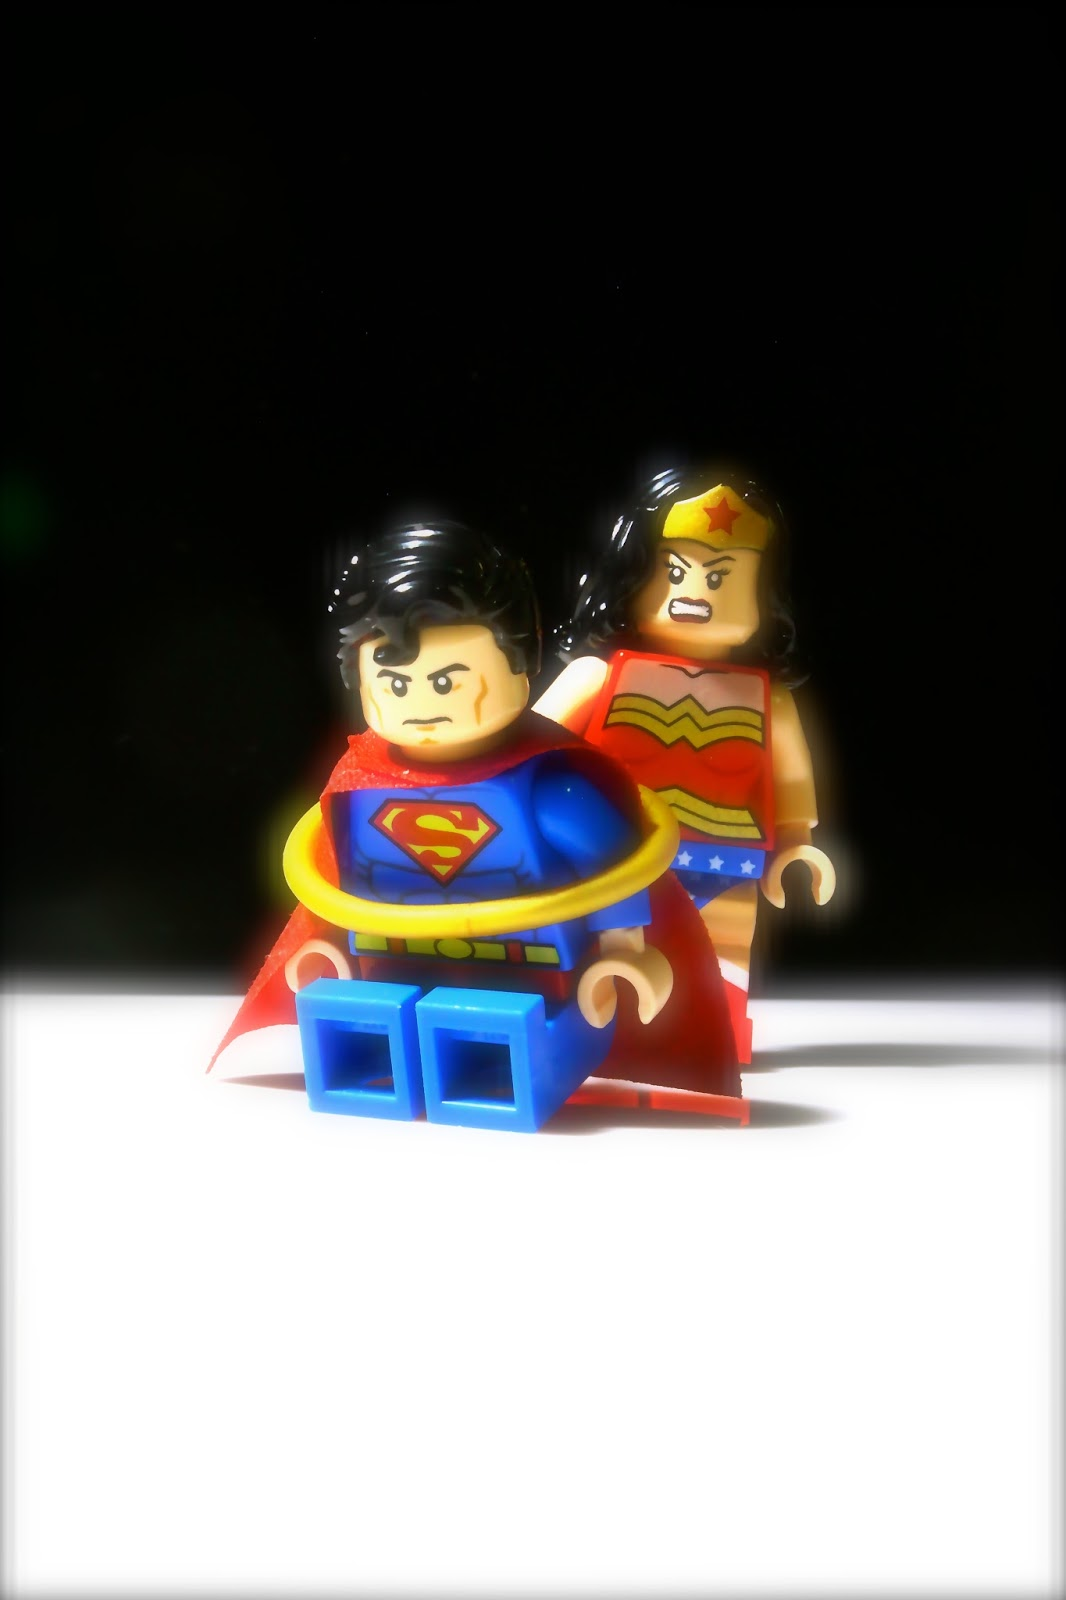 Wonder Woman Lego Label lego wonder woman Wonder Woman Lego Costume